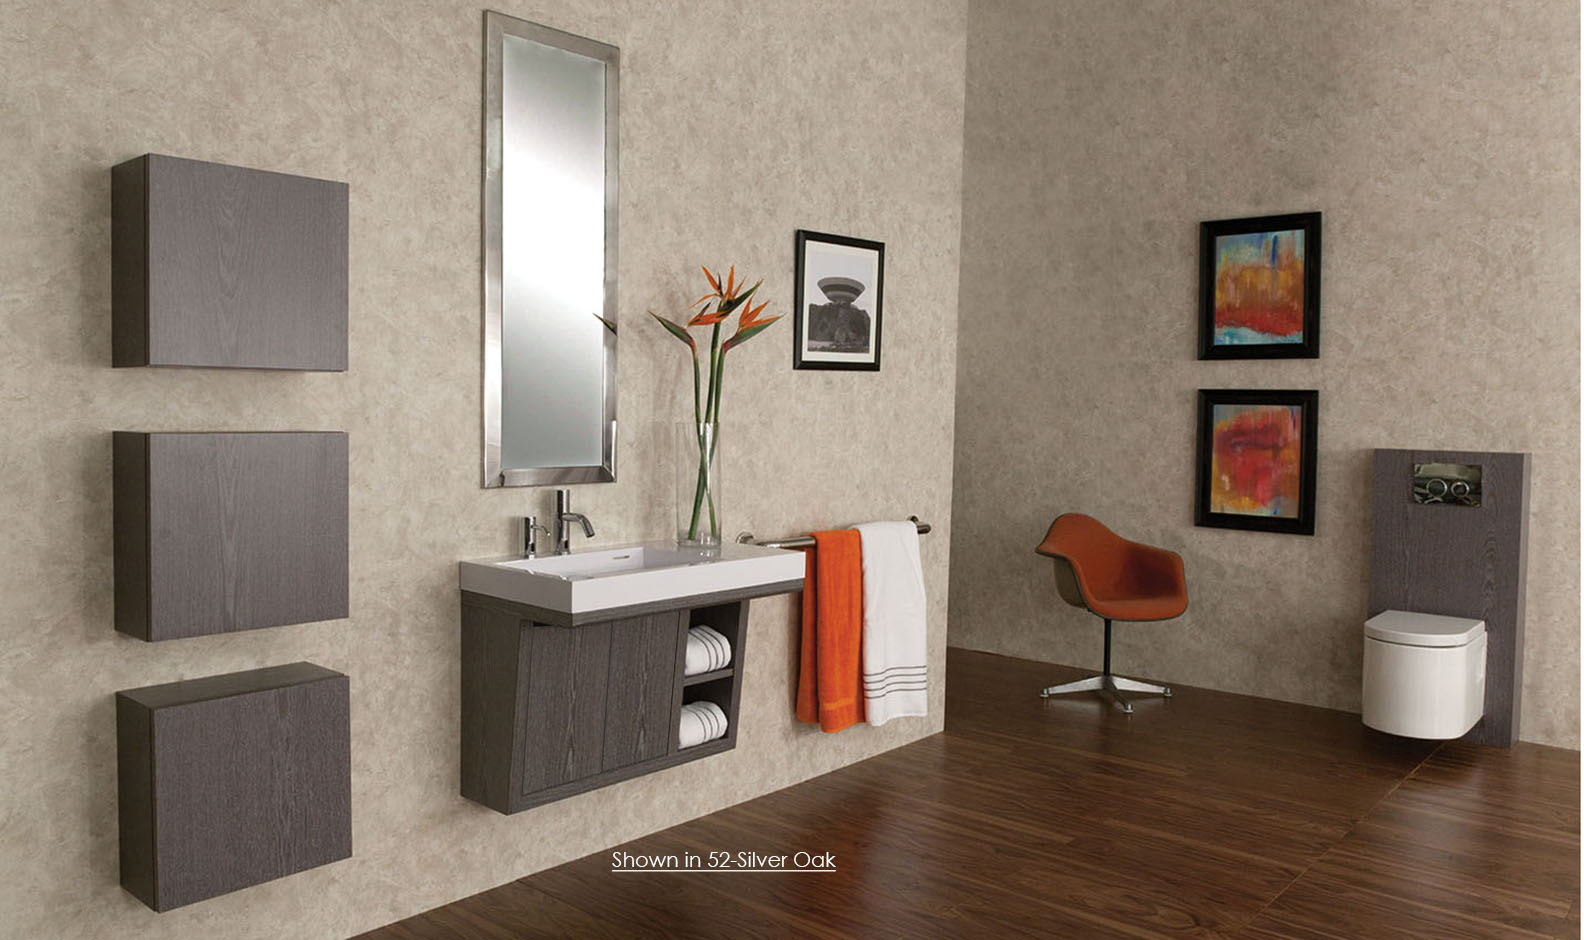 Bathroom Sinks Commercial commercial bathroom sinks ada - bathroom design